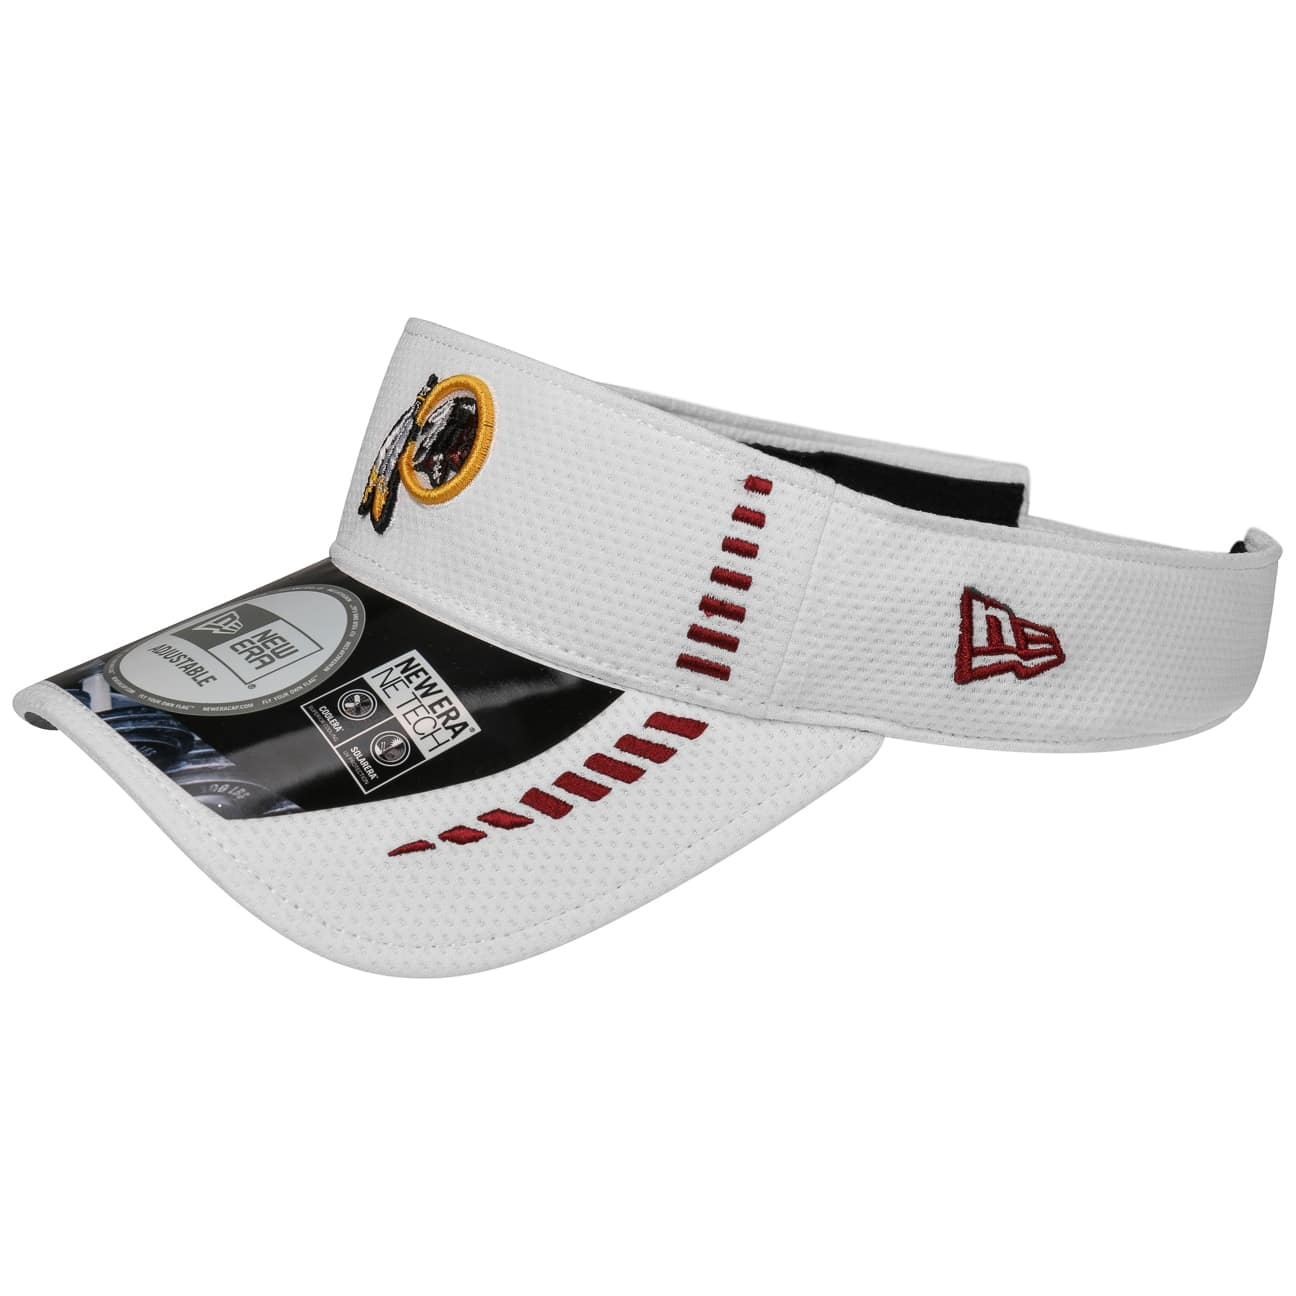 ... NFL Washington Redskins Visor by New Era - white 5 ... 2b018a0a83d